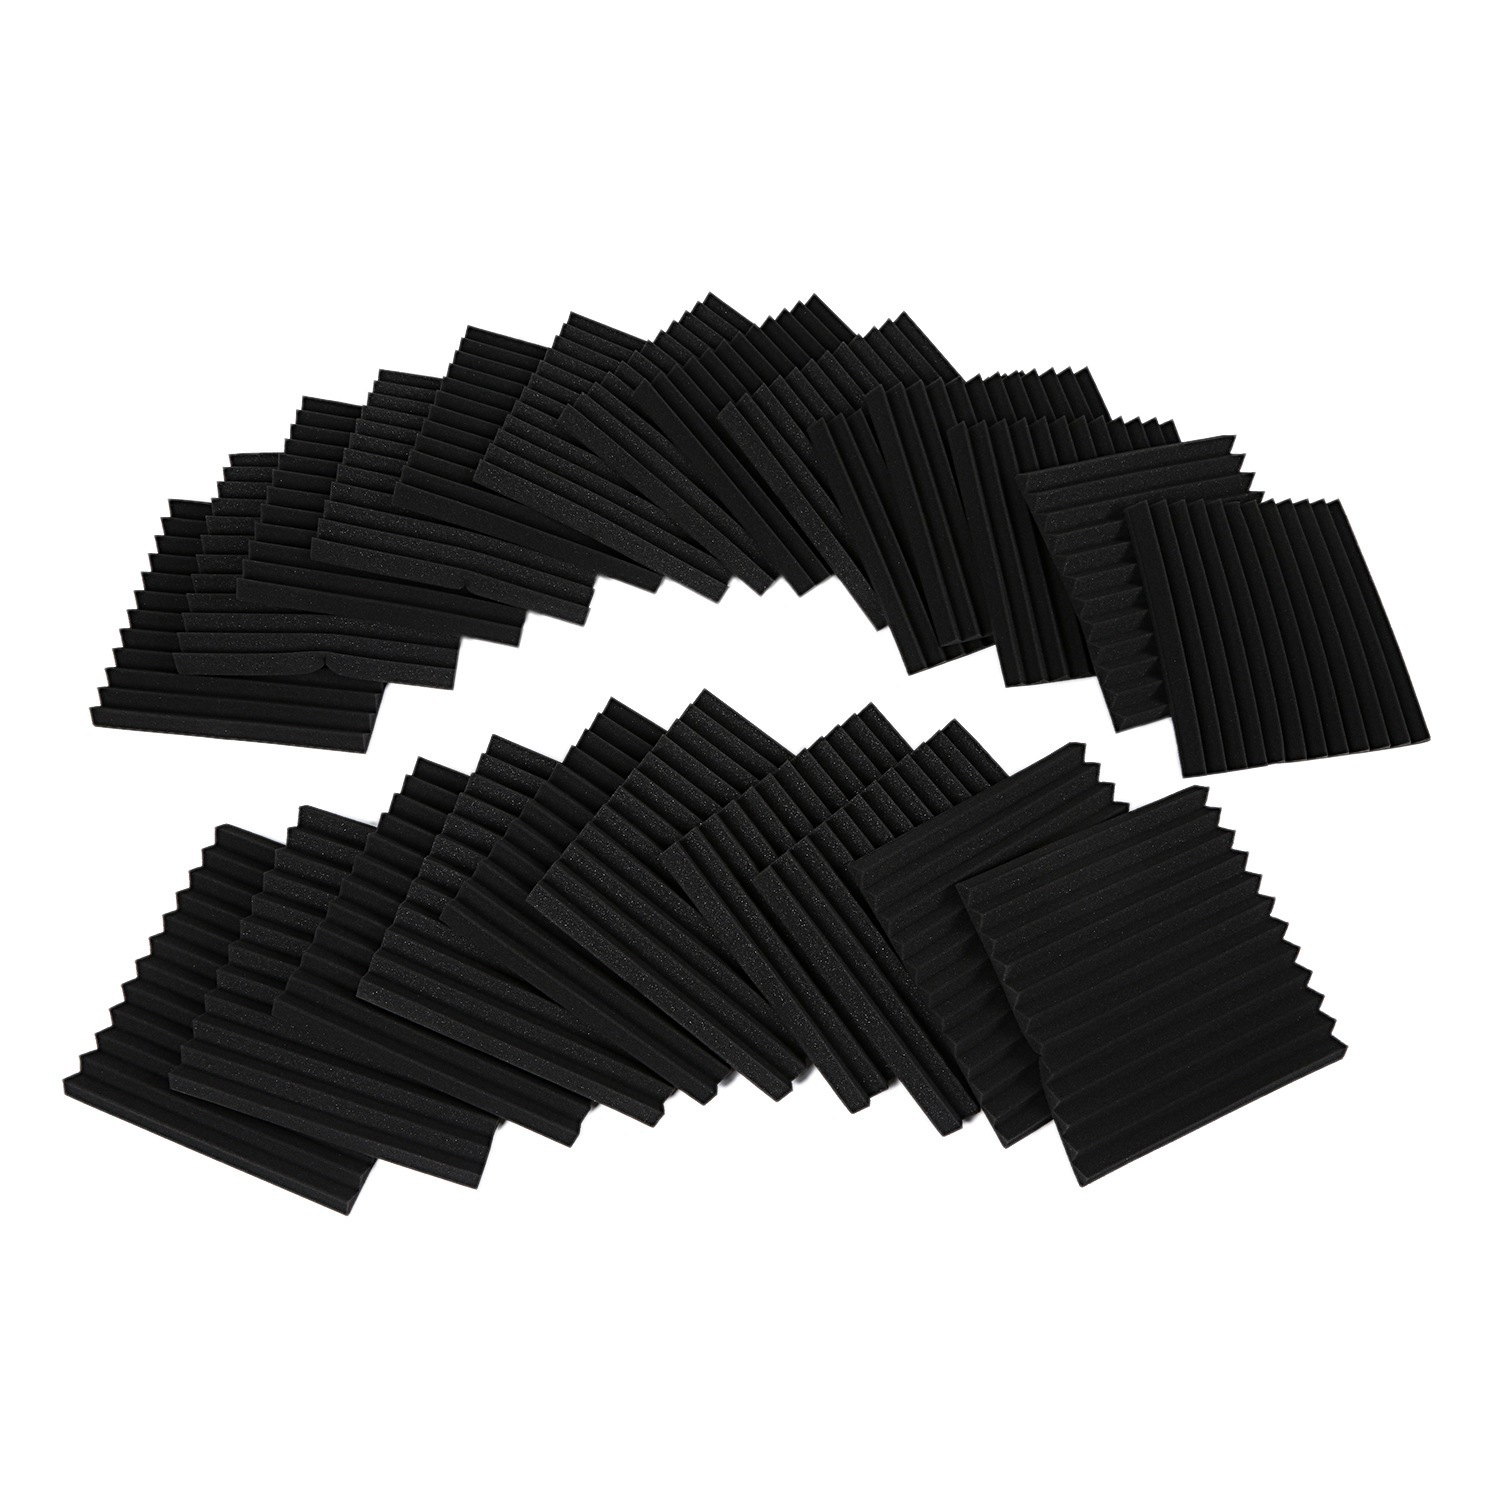 24 Pack Acoustic Panels Studio Foam Wedges 1 Inch X 12 Inch X 12 Inch